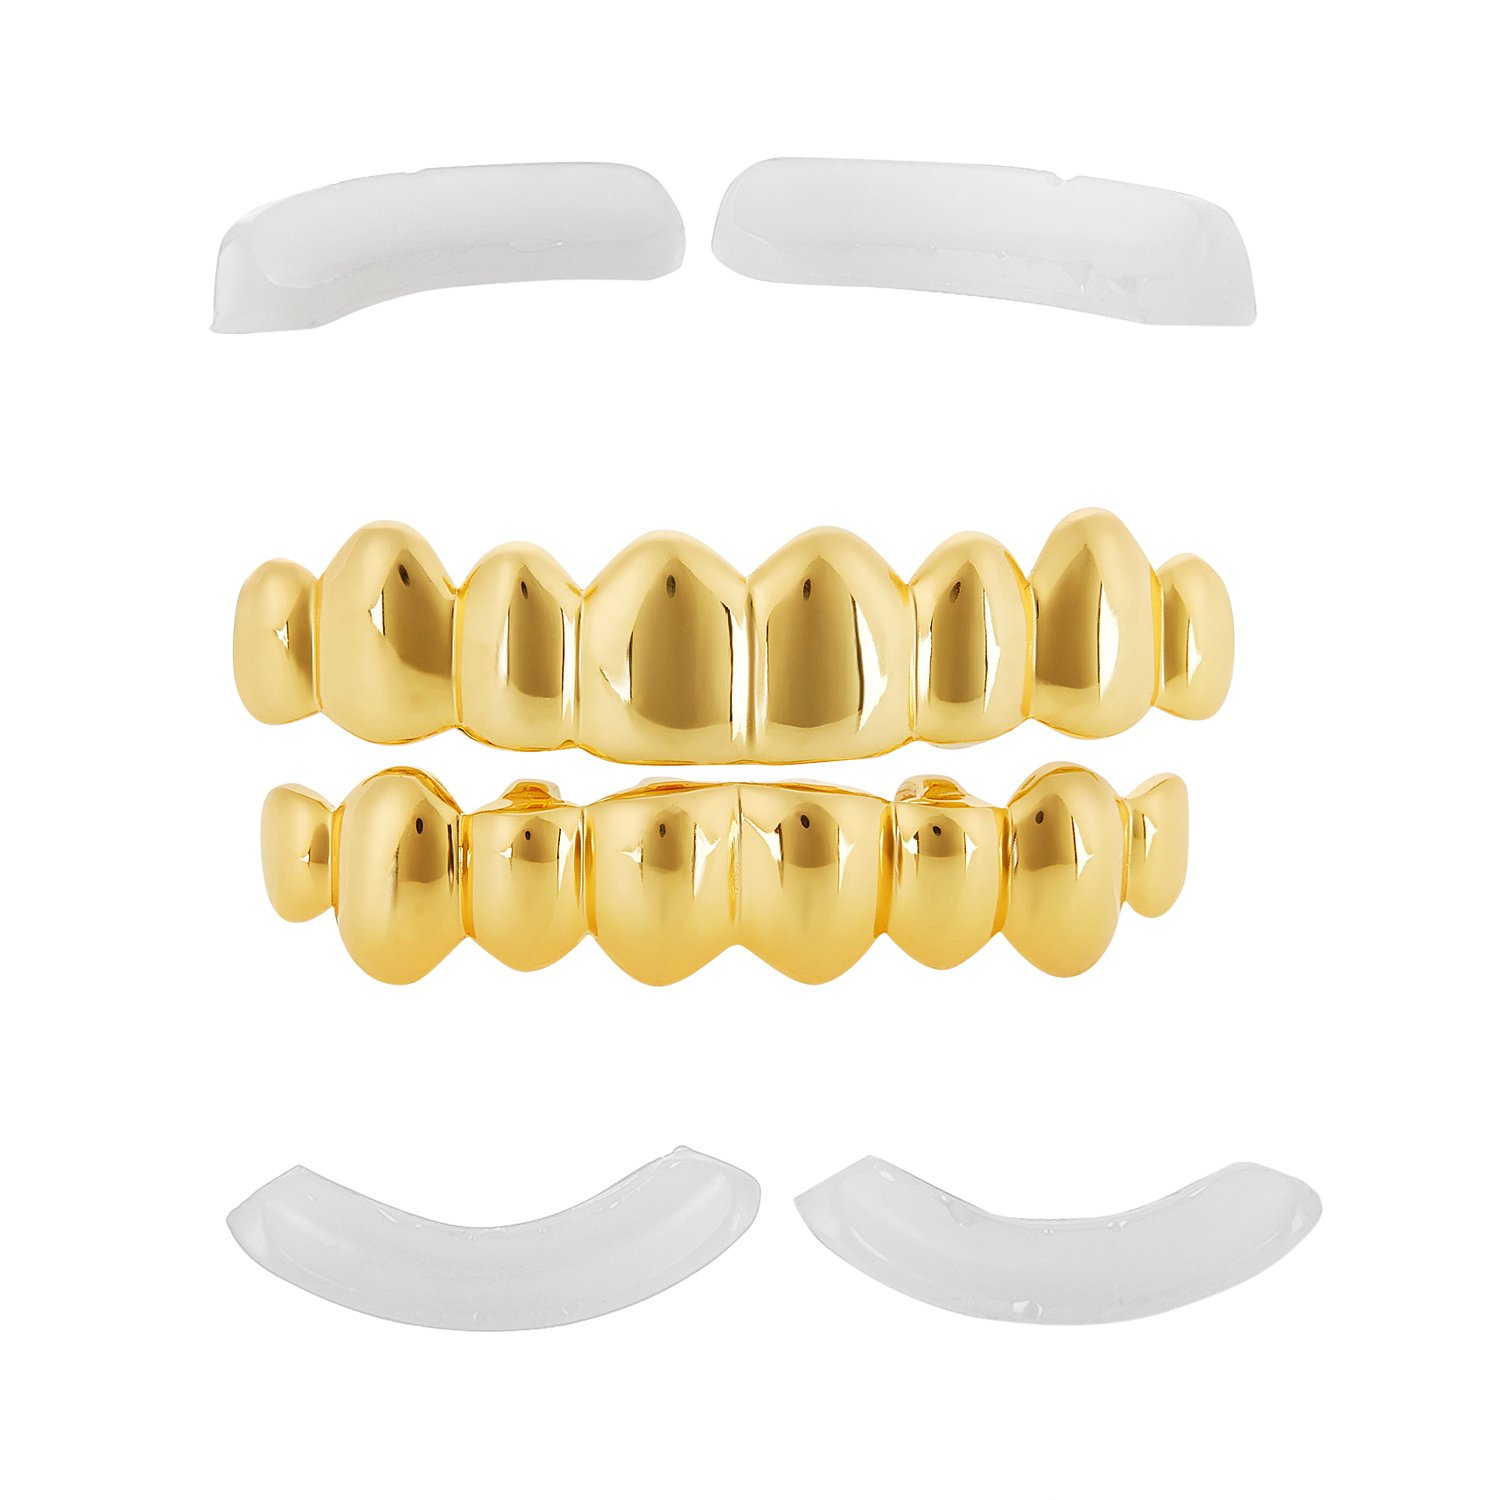 24k Gold Plated Over Solid .925 Silver Top & Bottom Removable Teeth Grillz Set by The Bling Factory